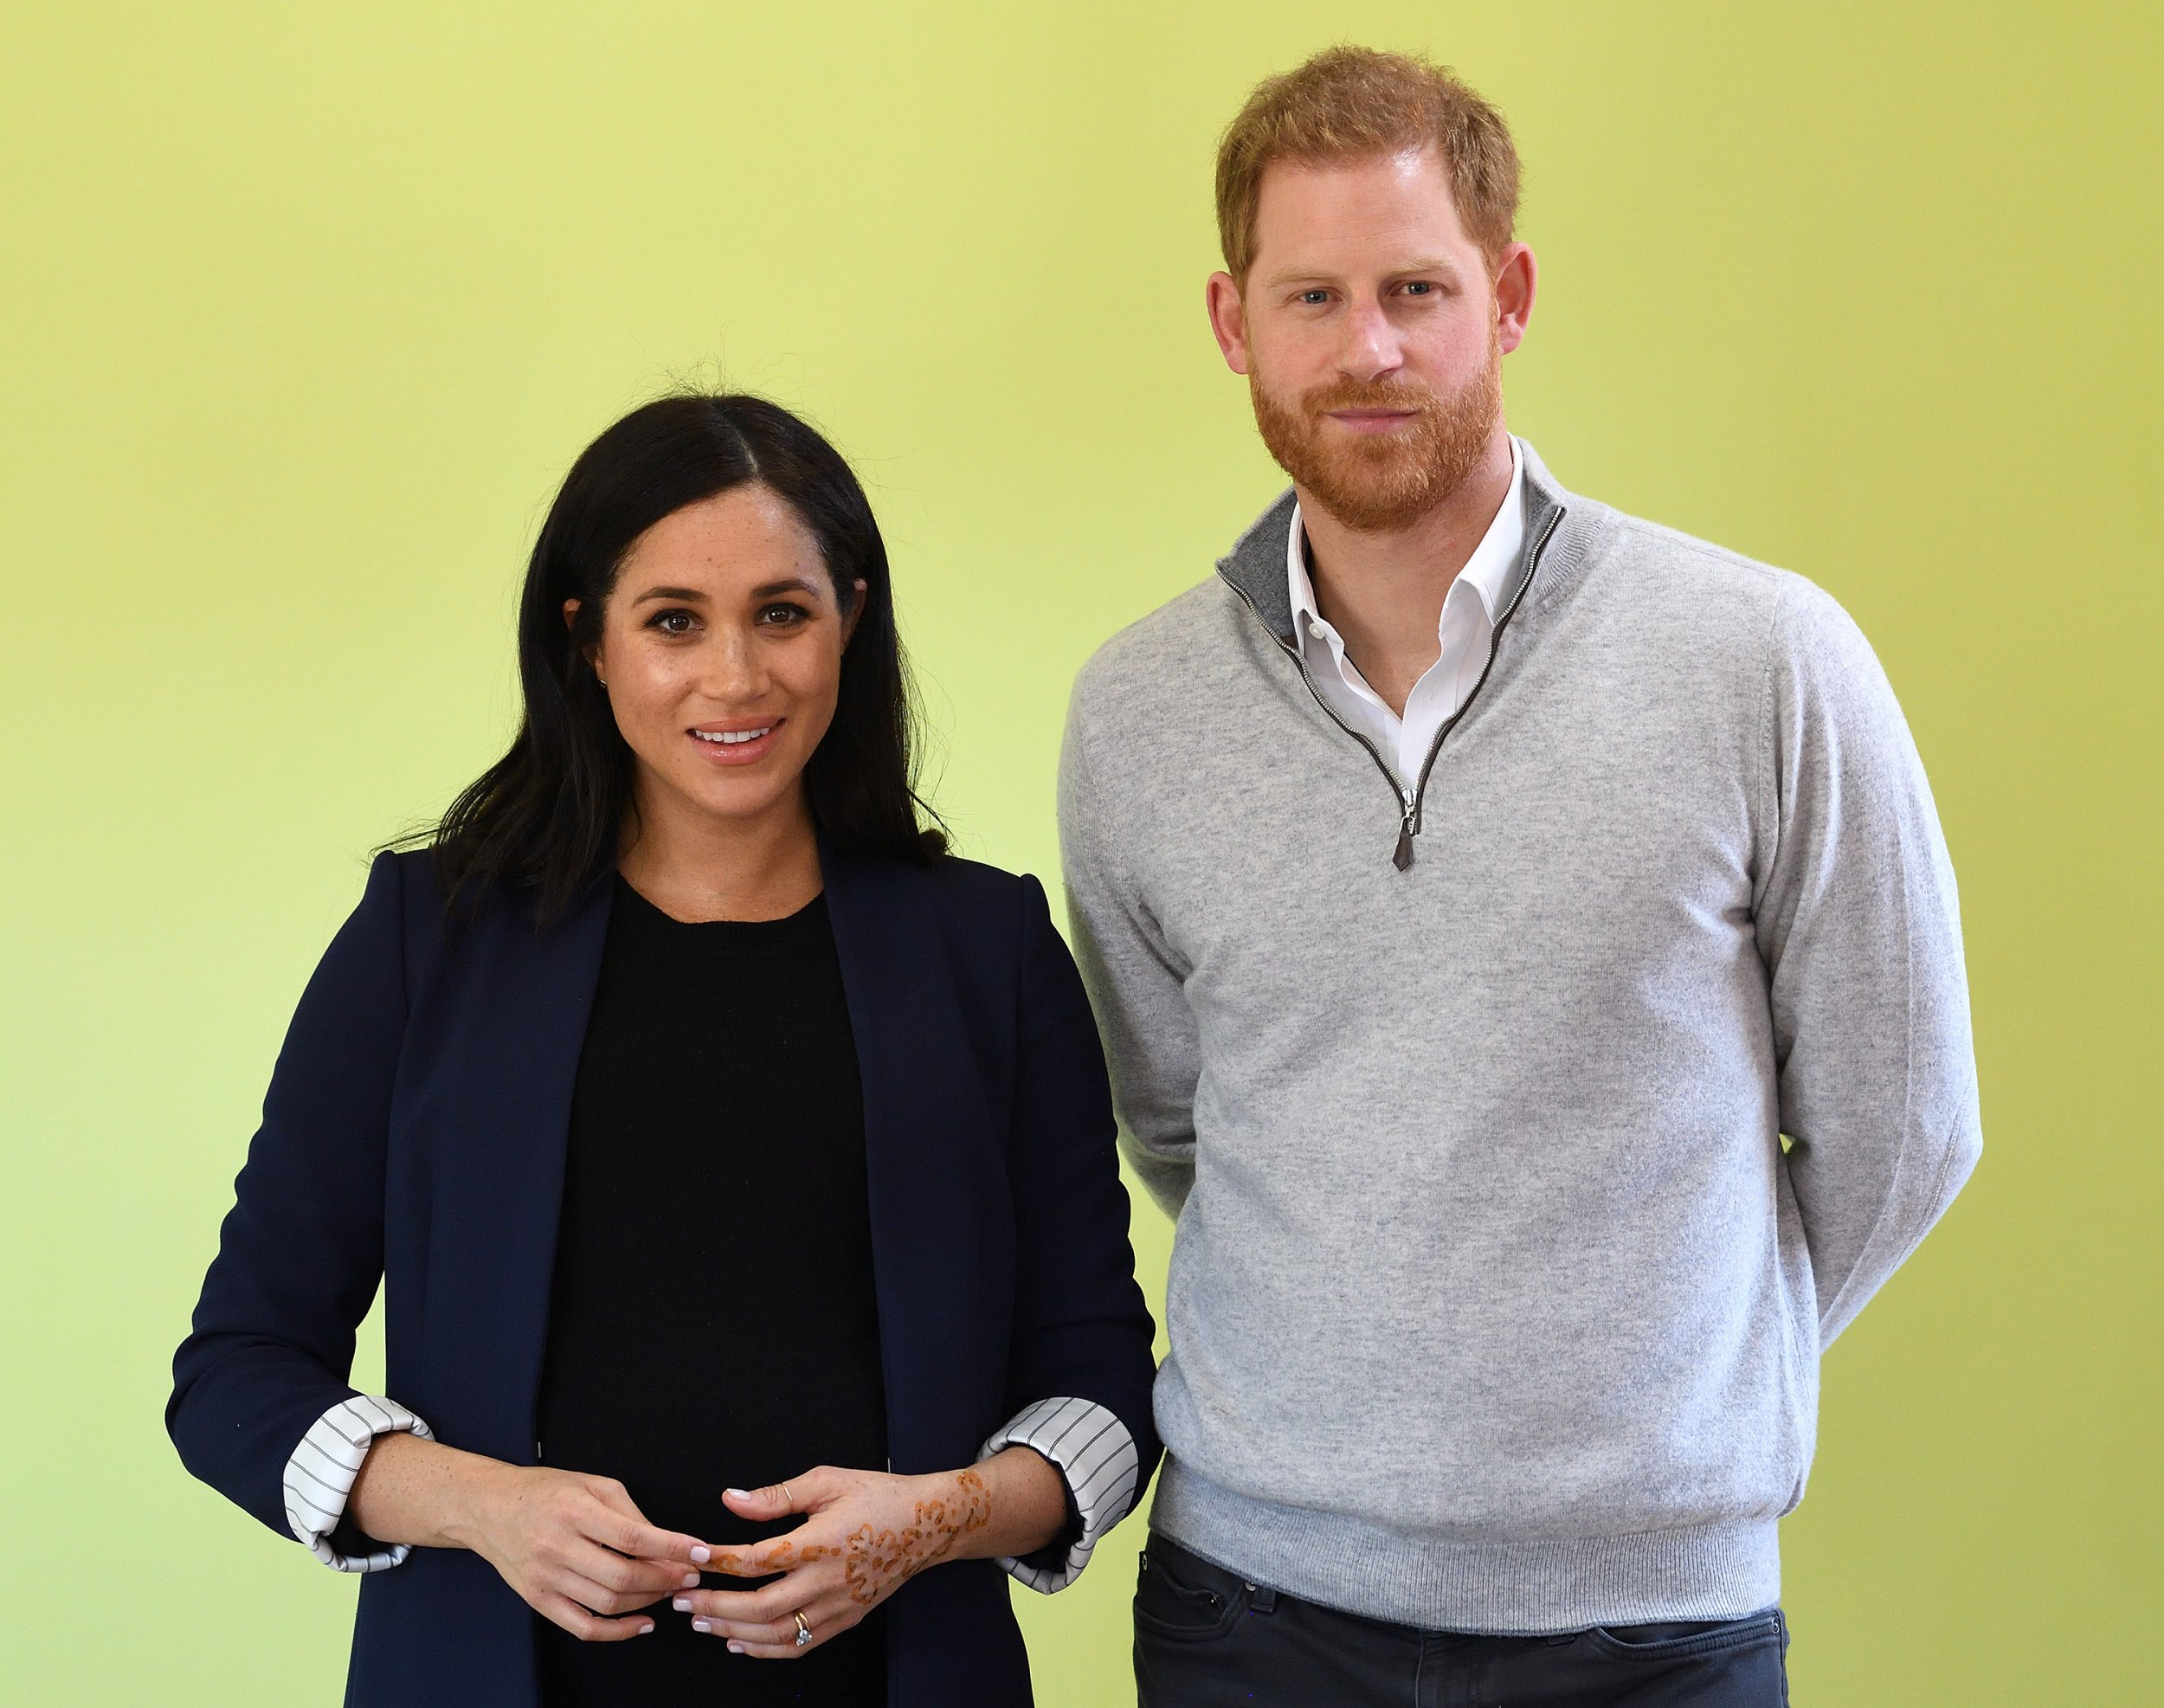 ASNI, MOROCCO - FEBRUARY 24: (UK OUT FOR 28 DAYS) Prince Harry, Duke of Sussex and Meghan, Duchess of Sussex visit a local secondary school meeting students and teachers on February 24, 2019 in Asni, Morocco. (Photo by Pool/Samir Hussein/WireImage)